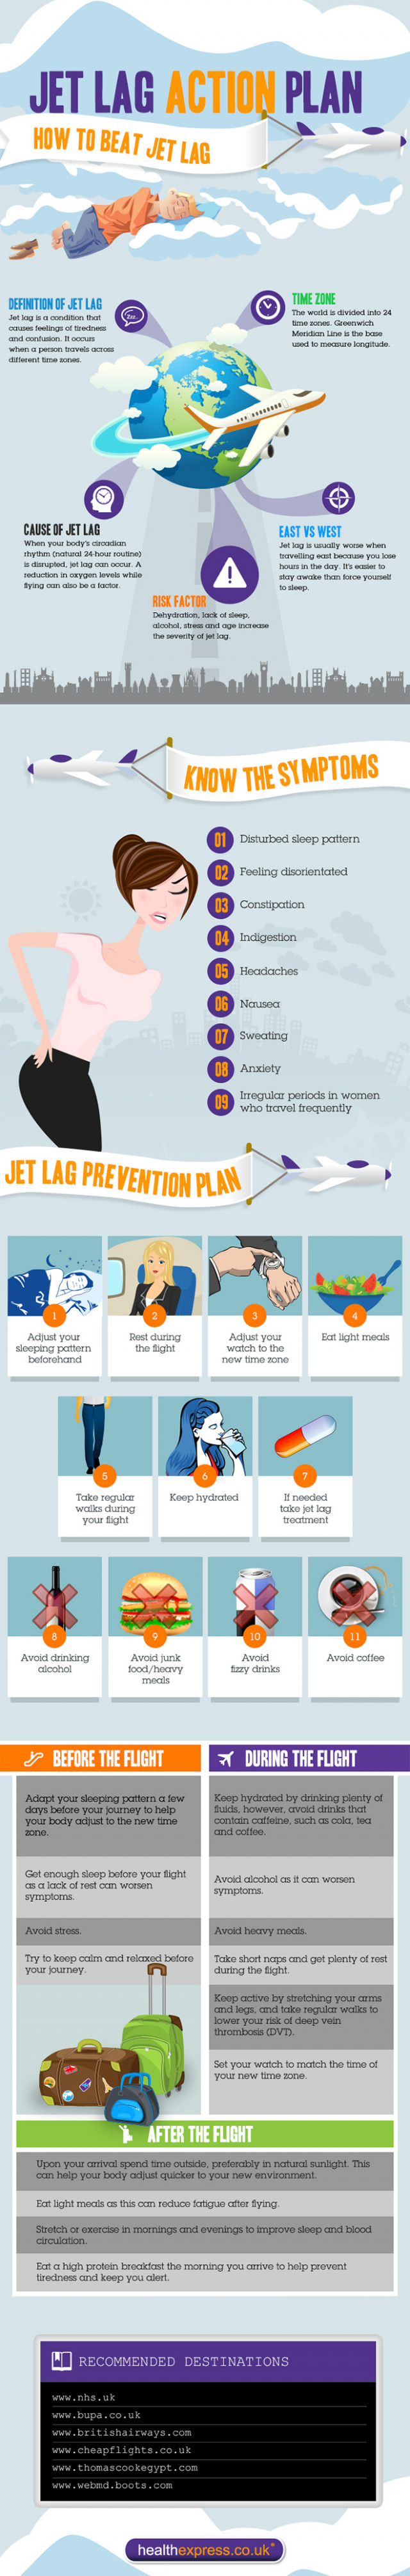 Jet Lag Action Plan - How To Beat Jet Lag